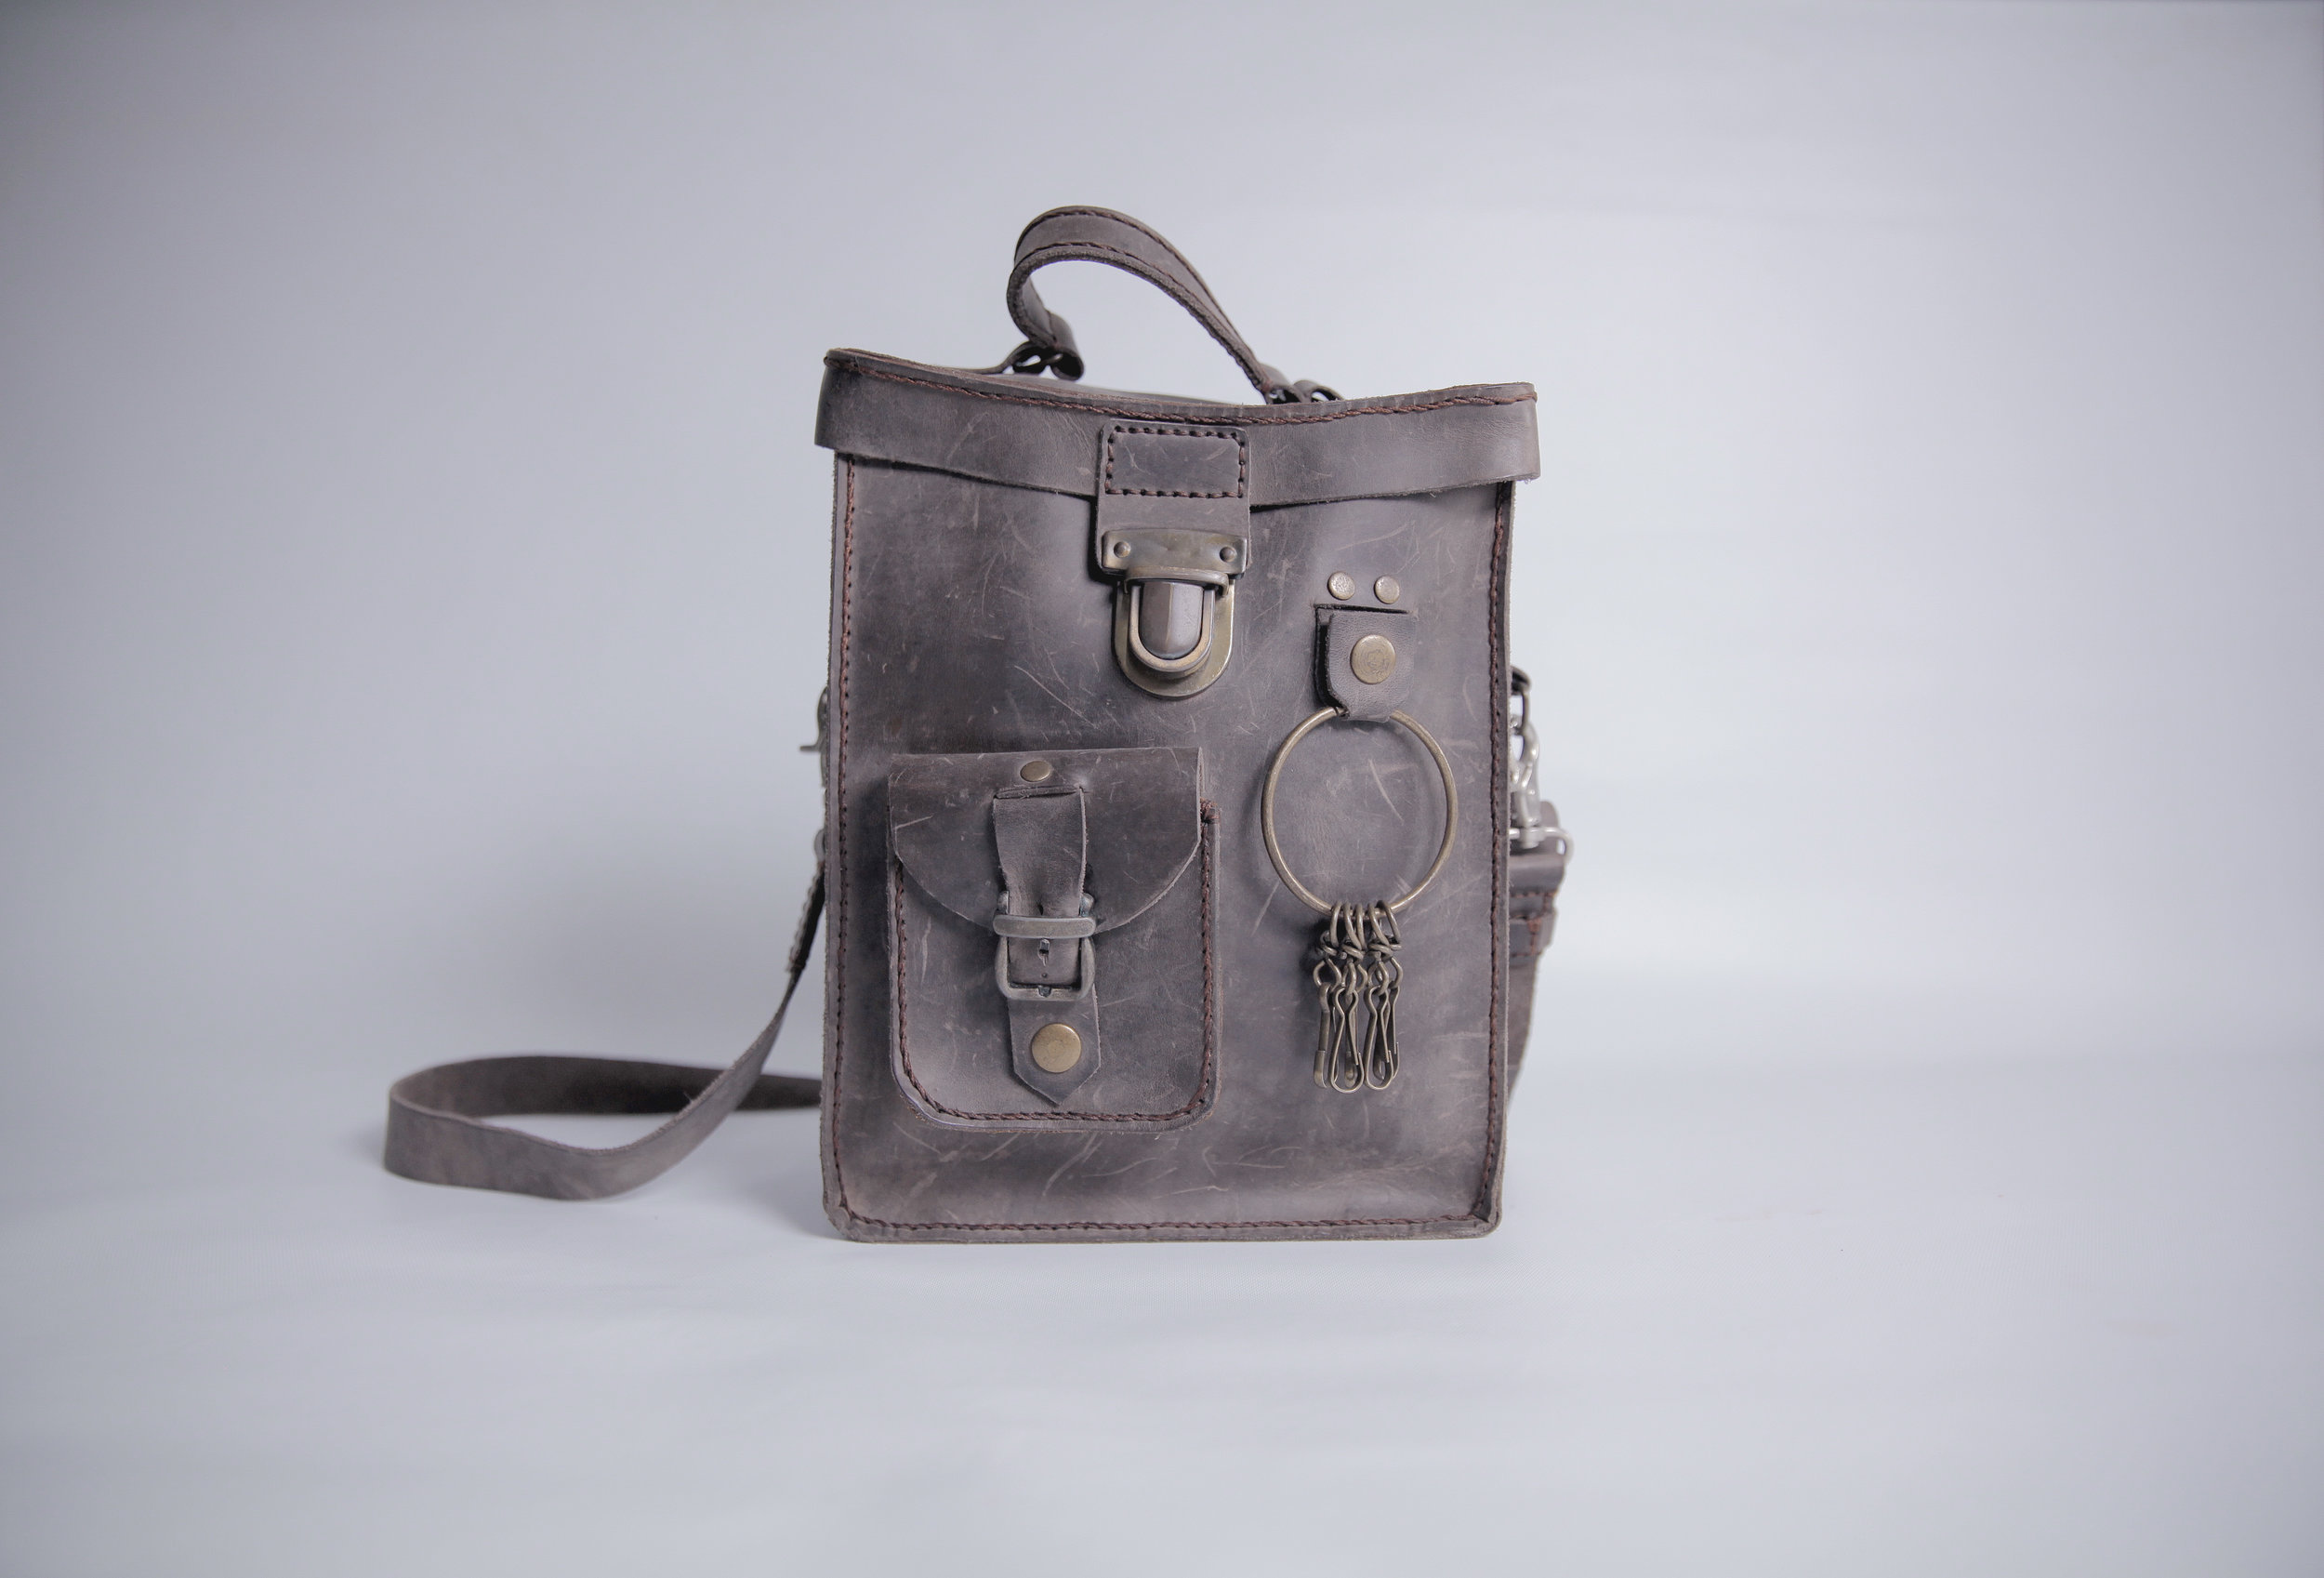 THE TIME TRAVELLER  Founder's First Satchel, a month into leather crafting